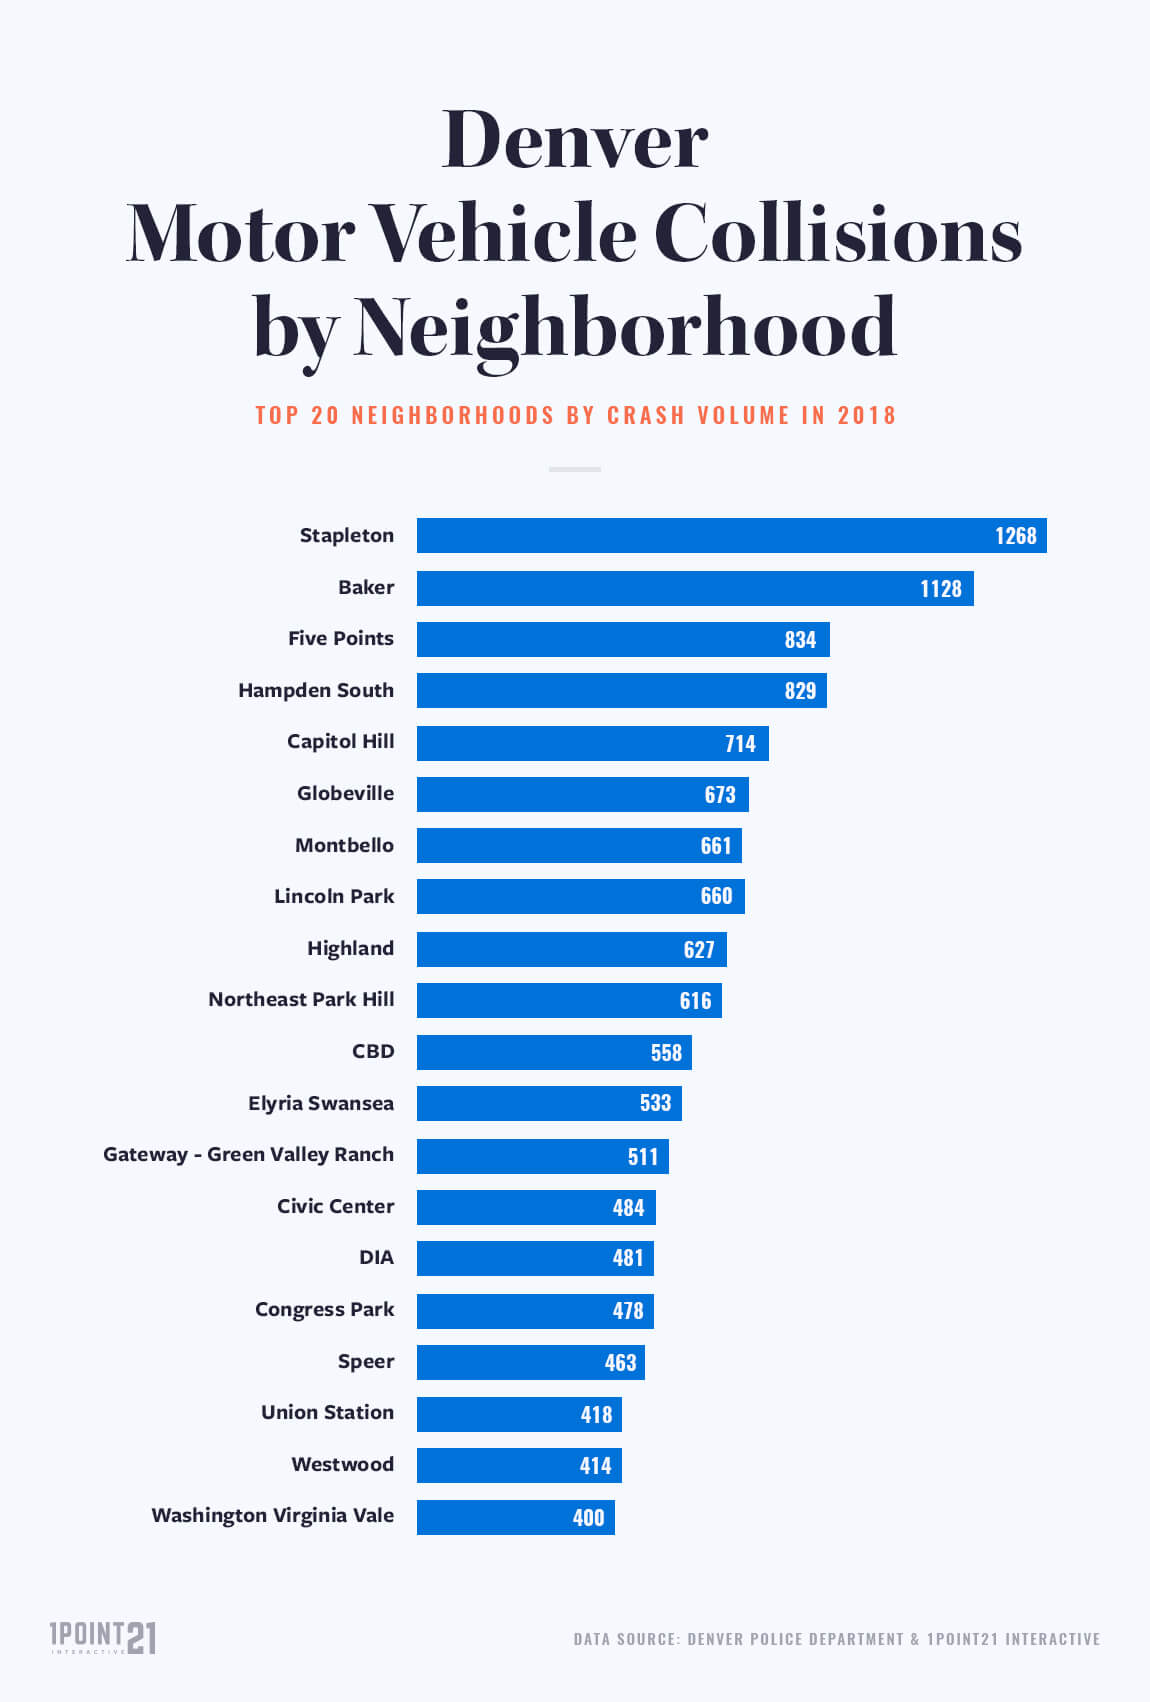 Car accidents by neighborhood